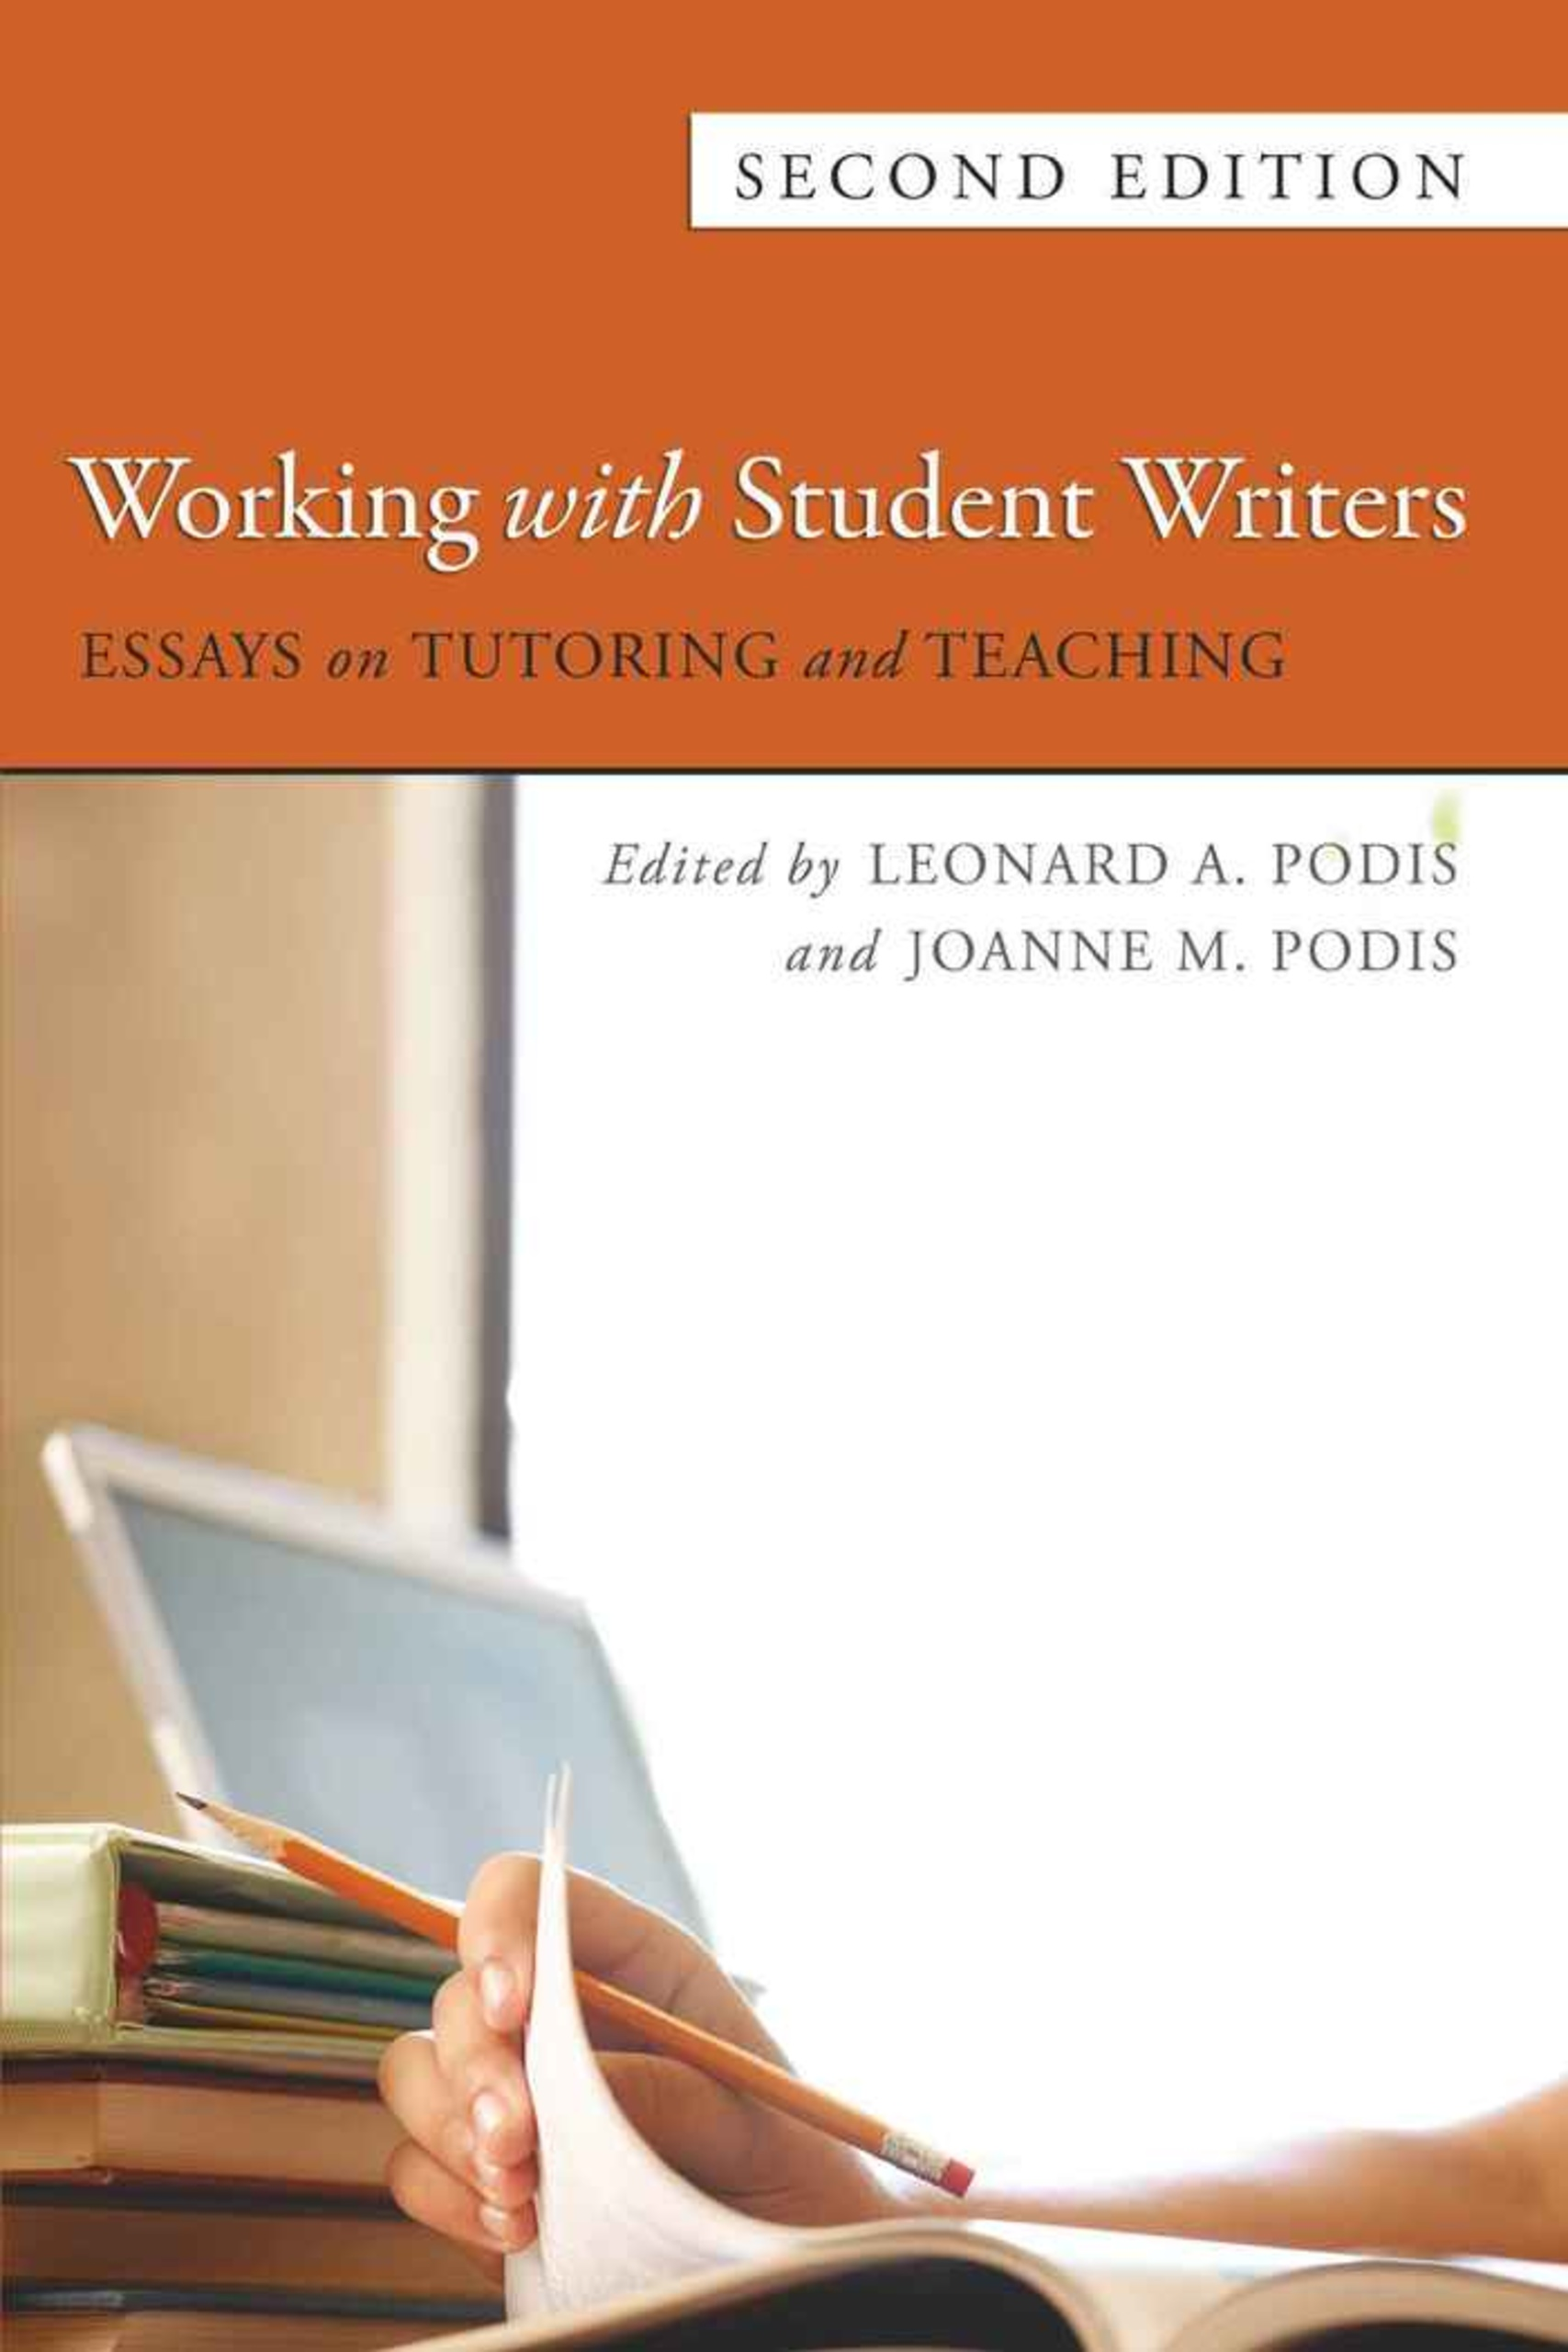 Title: Working with Student Writers